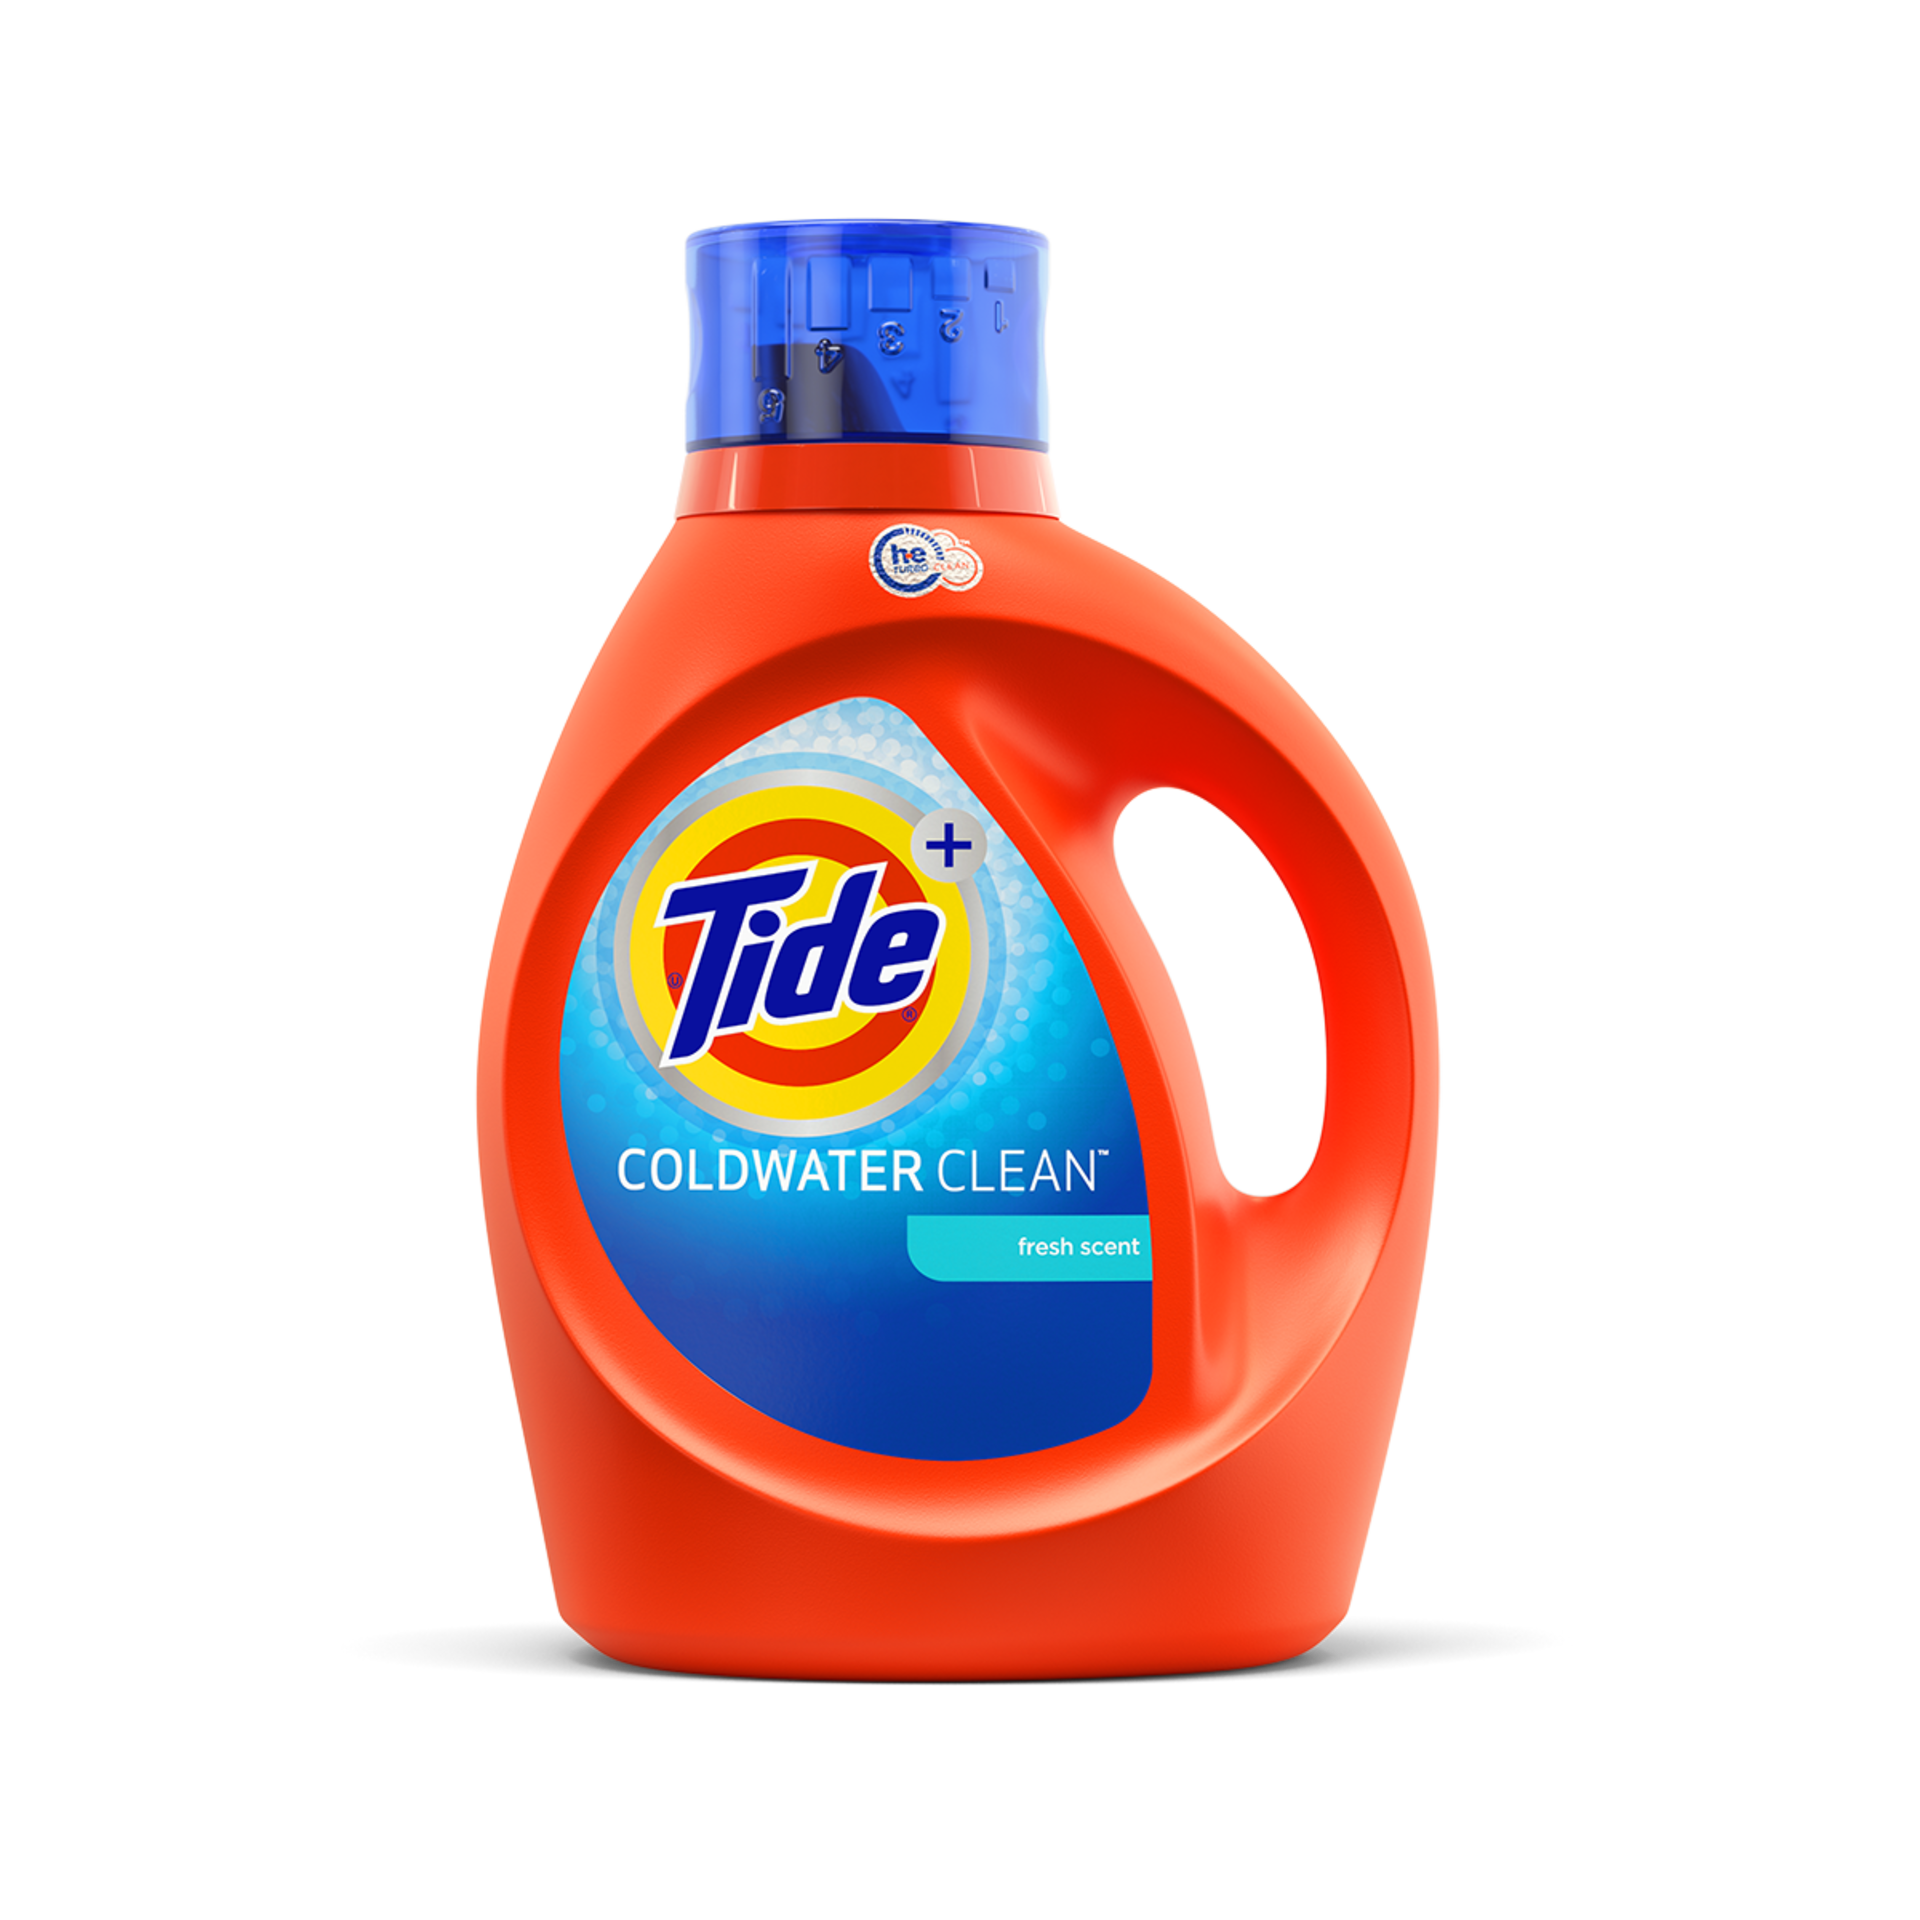 Tide Plus Coldwater Clean Liquid Laundry Detergent